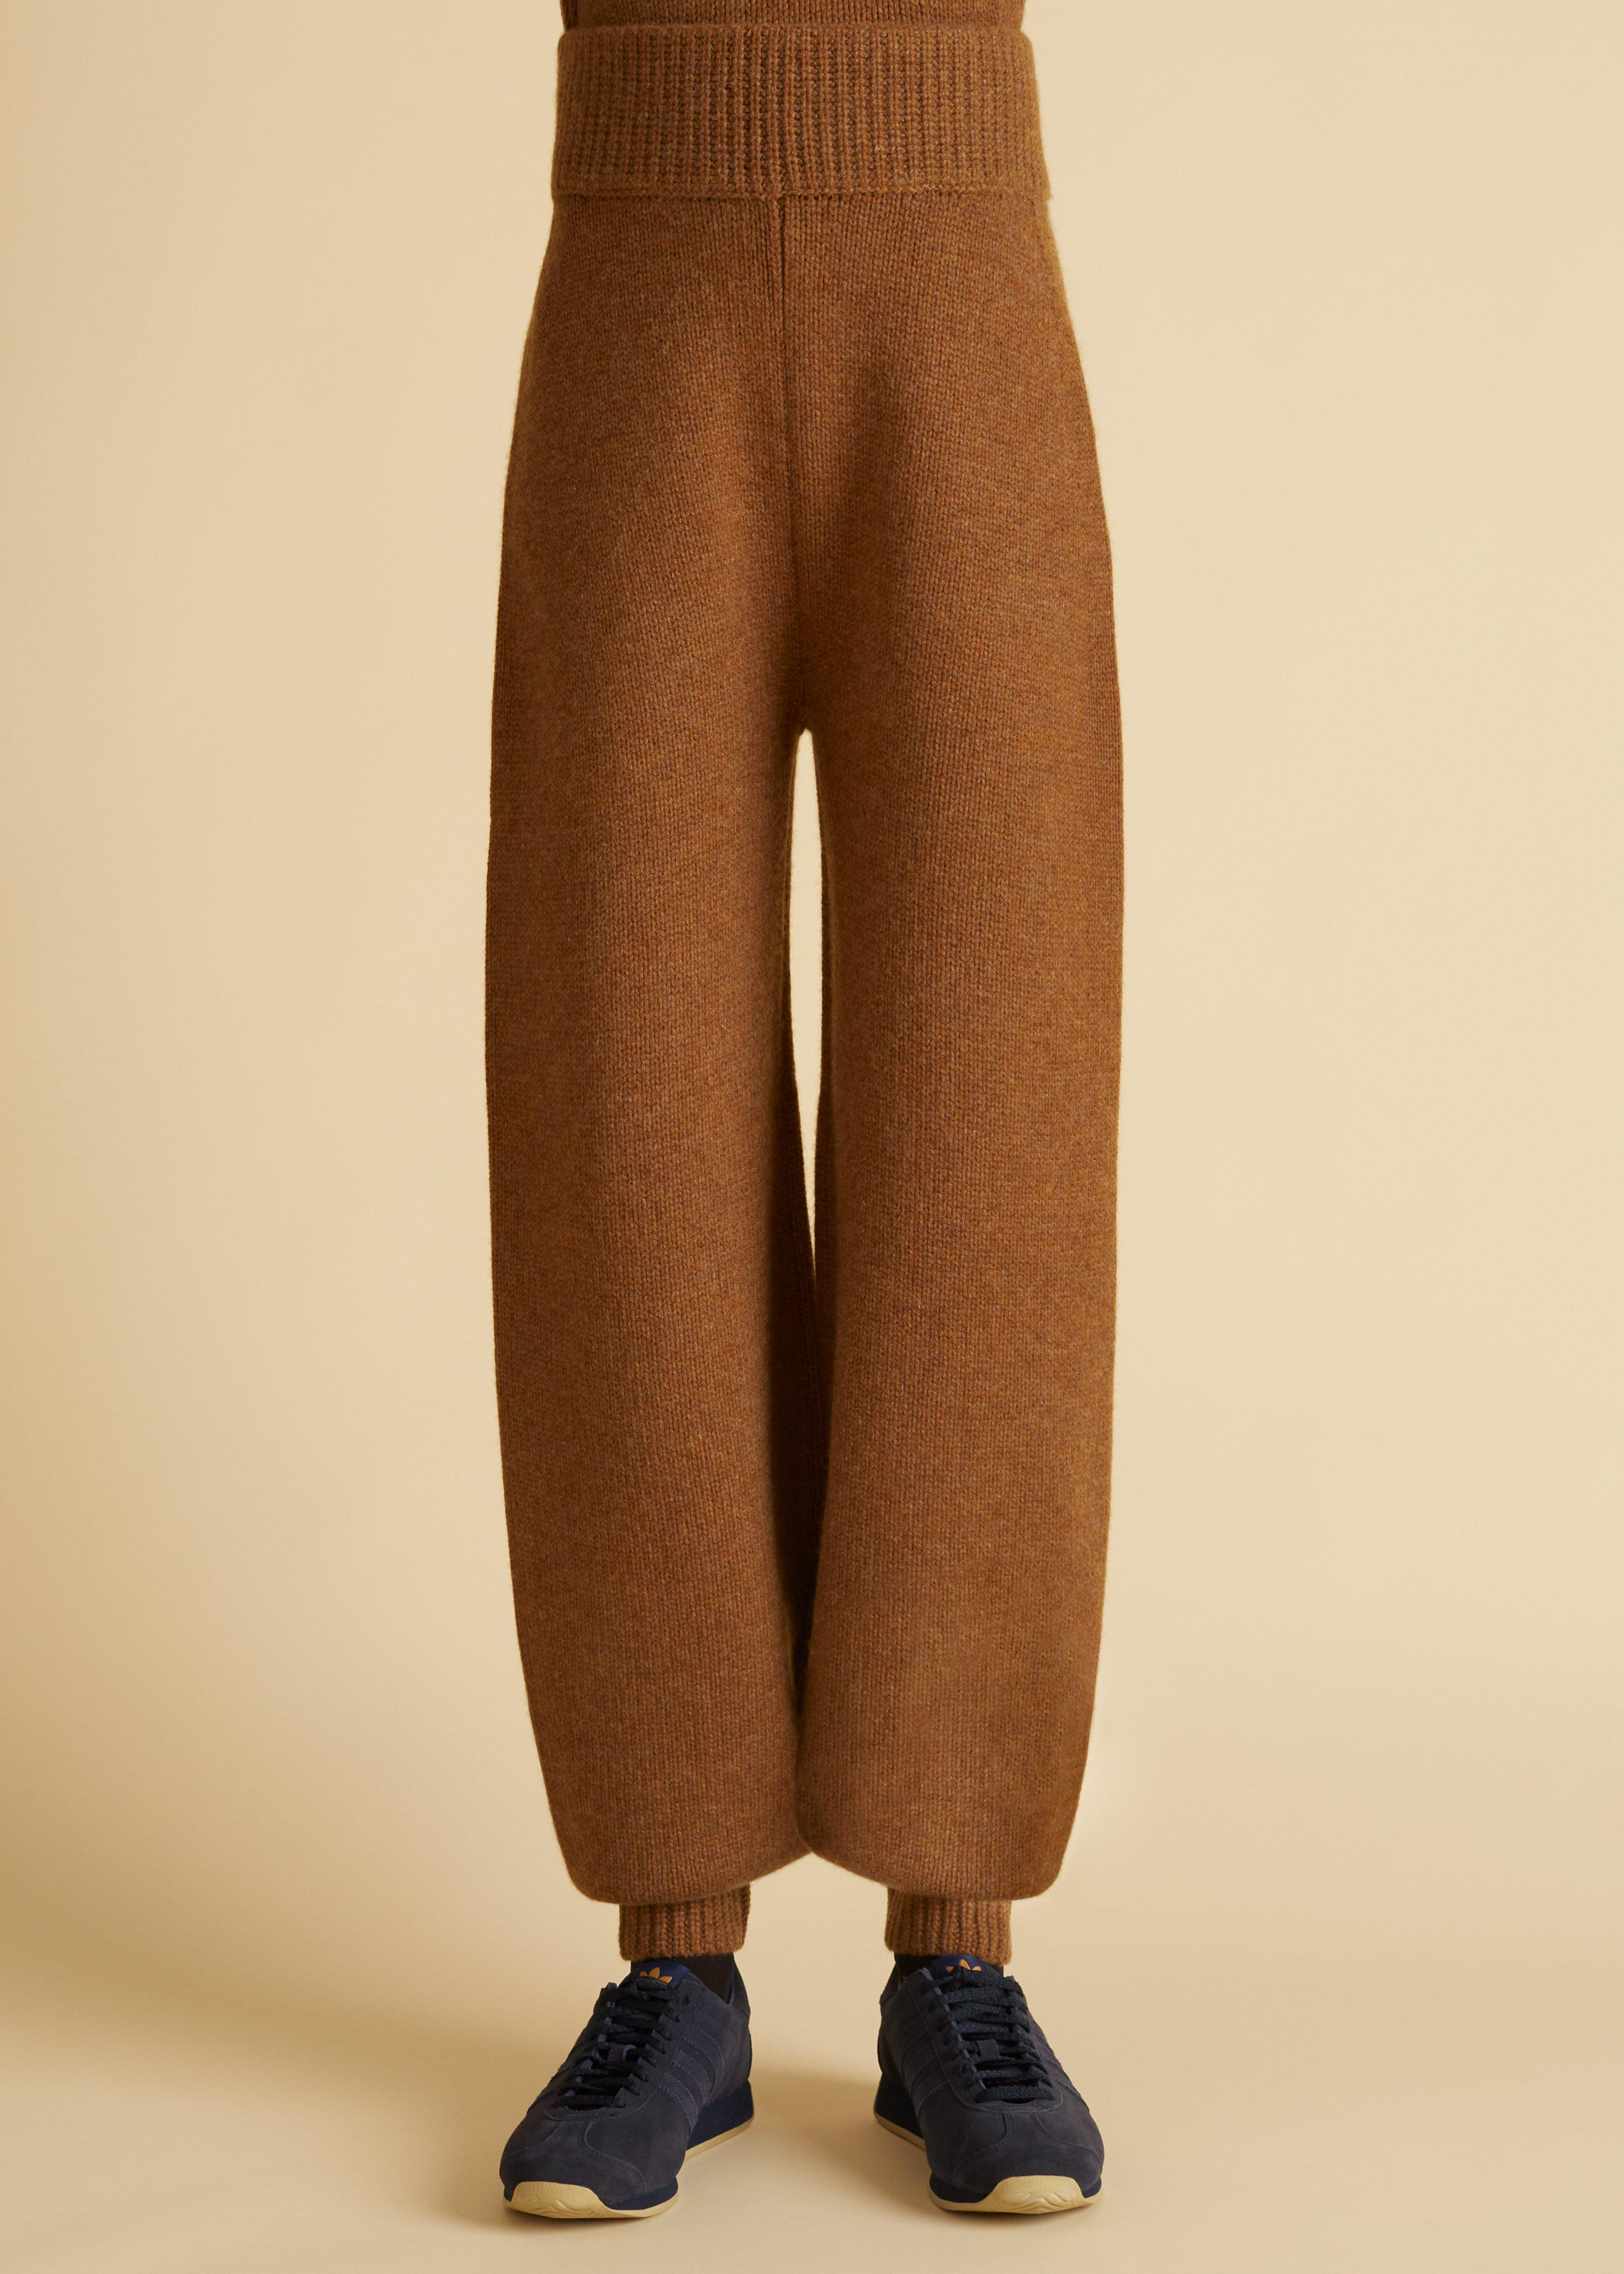 The Joey Pant in Walnut 1